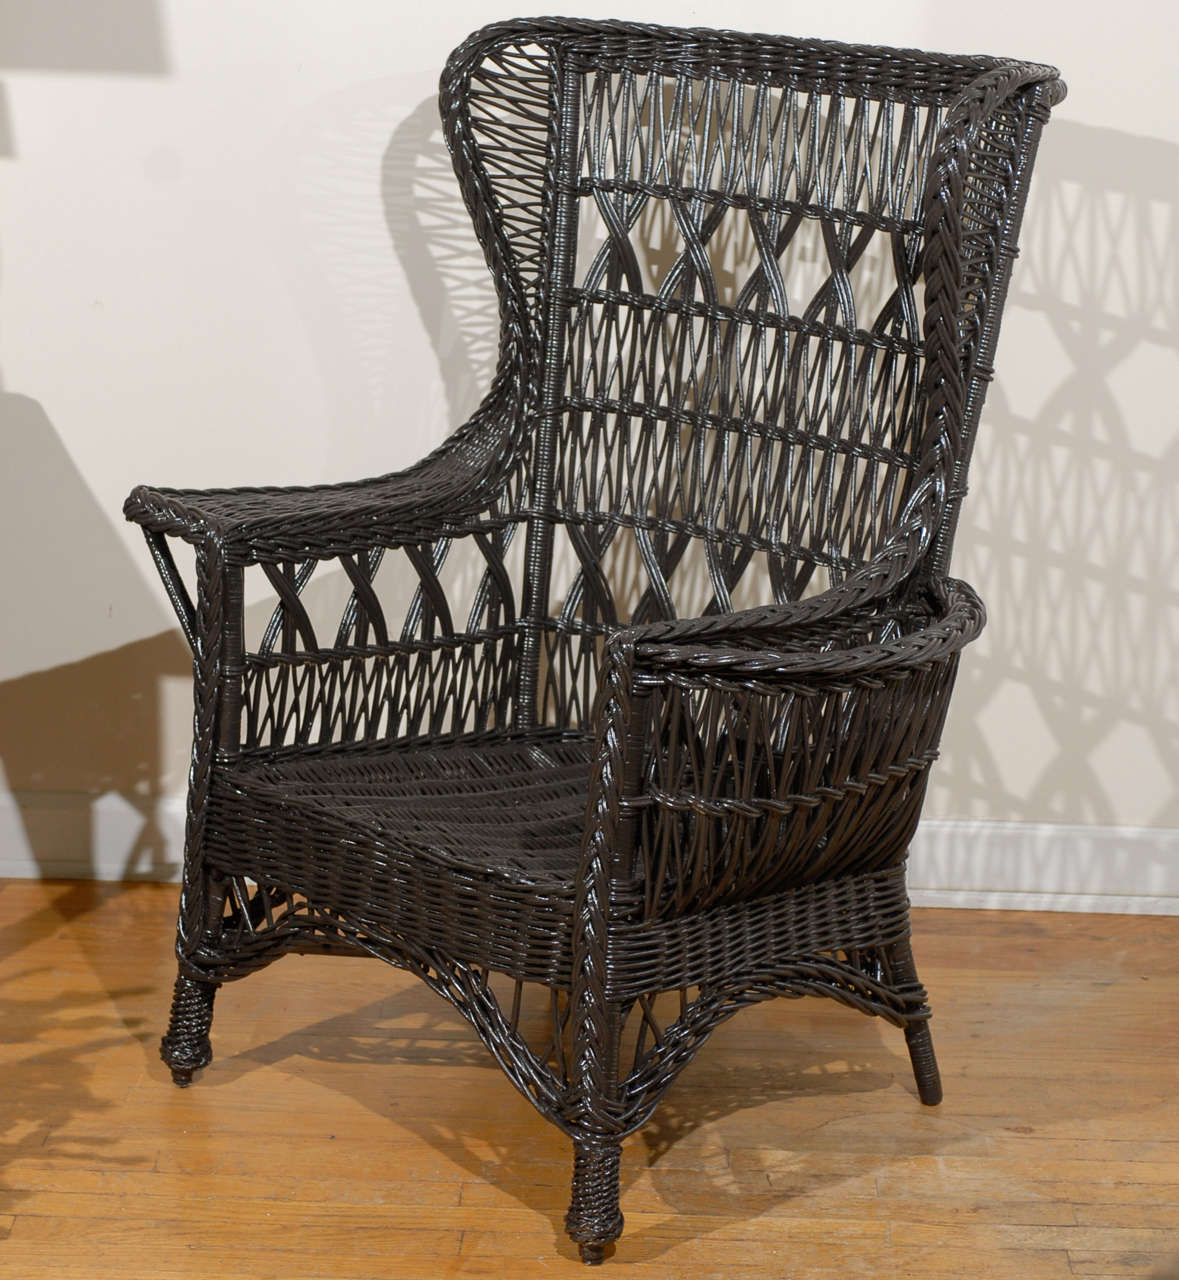 This is a beautiful brown antique American wicker wing chair in the Mission style with magazine pocket and woven pineapple feet in the front.  This chair is Bar Harbor style and very sturdy.  The chair was made in 1915-1920.  Please visit our